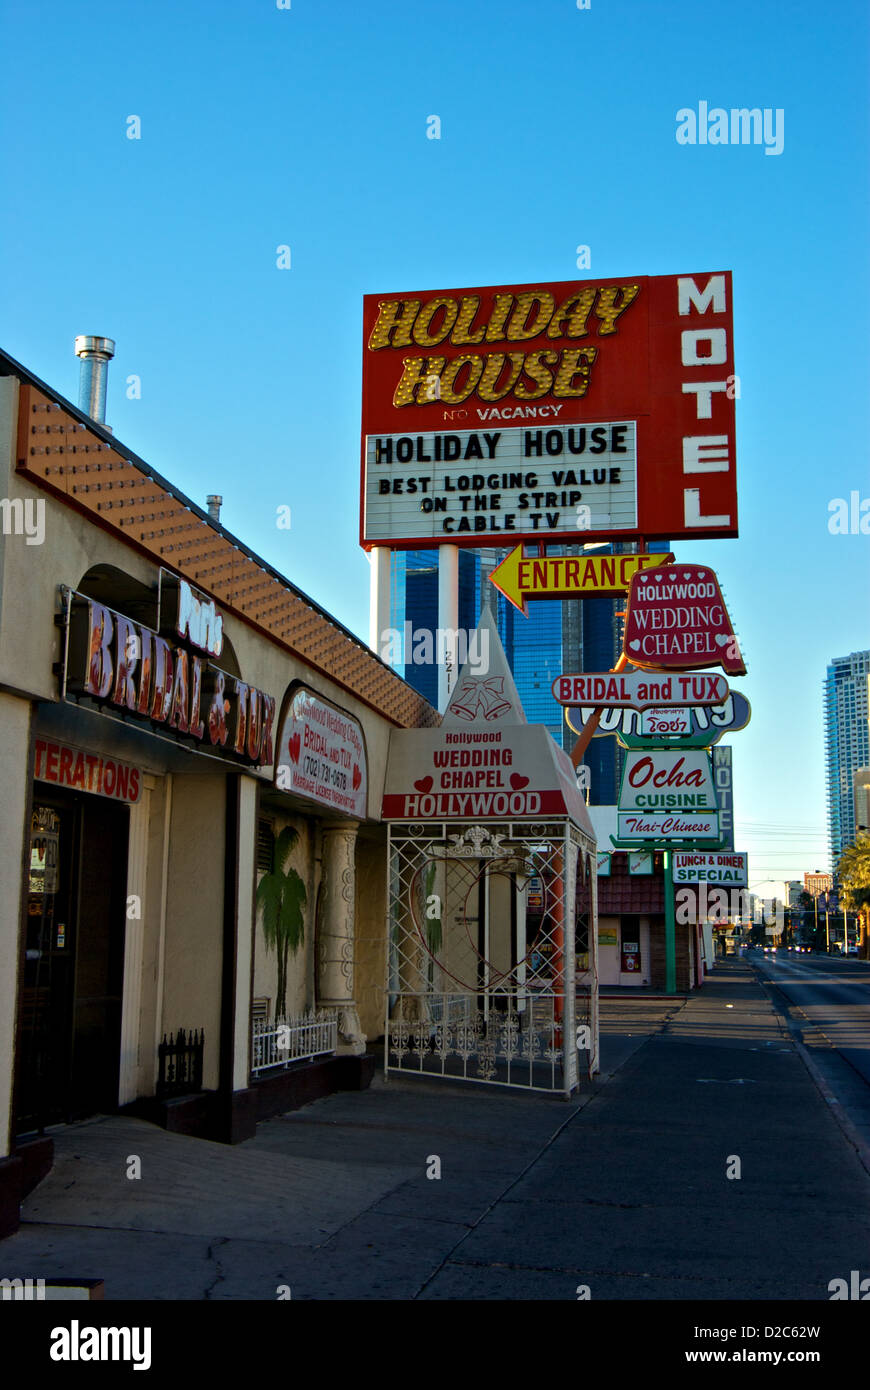 Hollywood Motel Seedy Old Section Of Las Vegas Boulevard Strip Hollywood Wedding